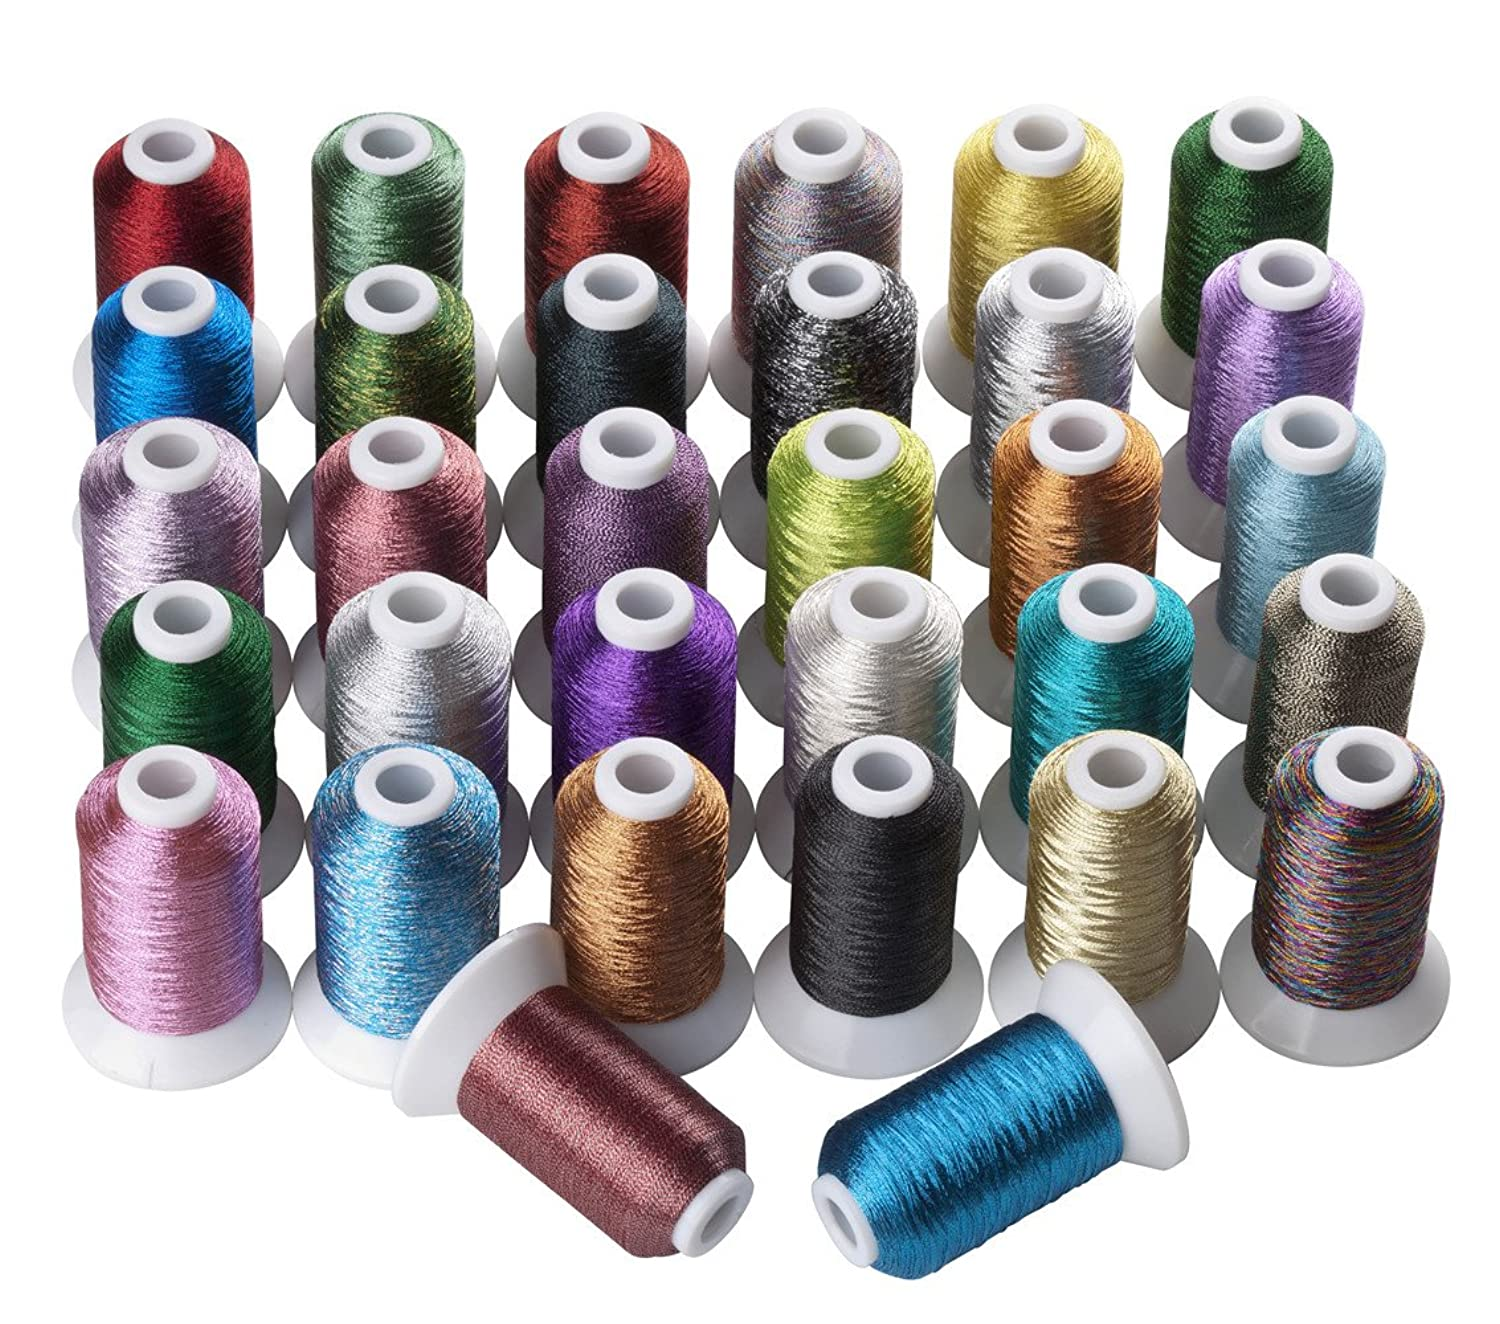 32 Colors Metallic Machine/Hand Embroidery Thread 500 Meters Each for Brother Janome Pfaff Babylock Singer Bernina Husqvaran and Most Home Embroidery Machines